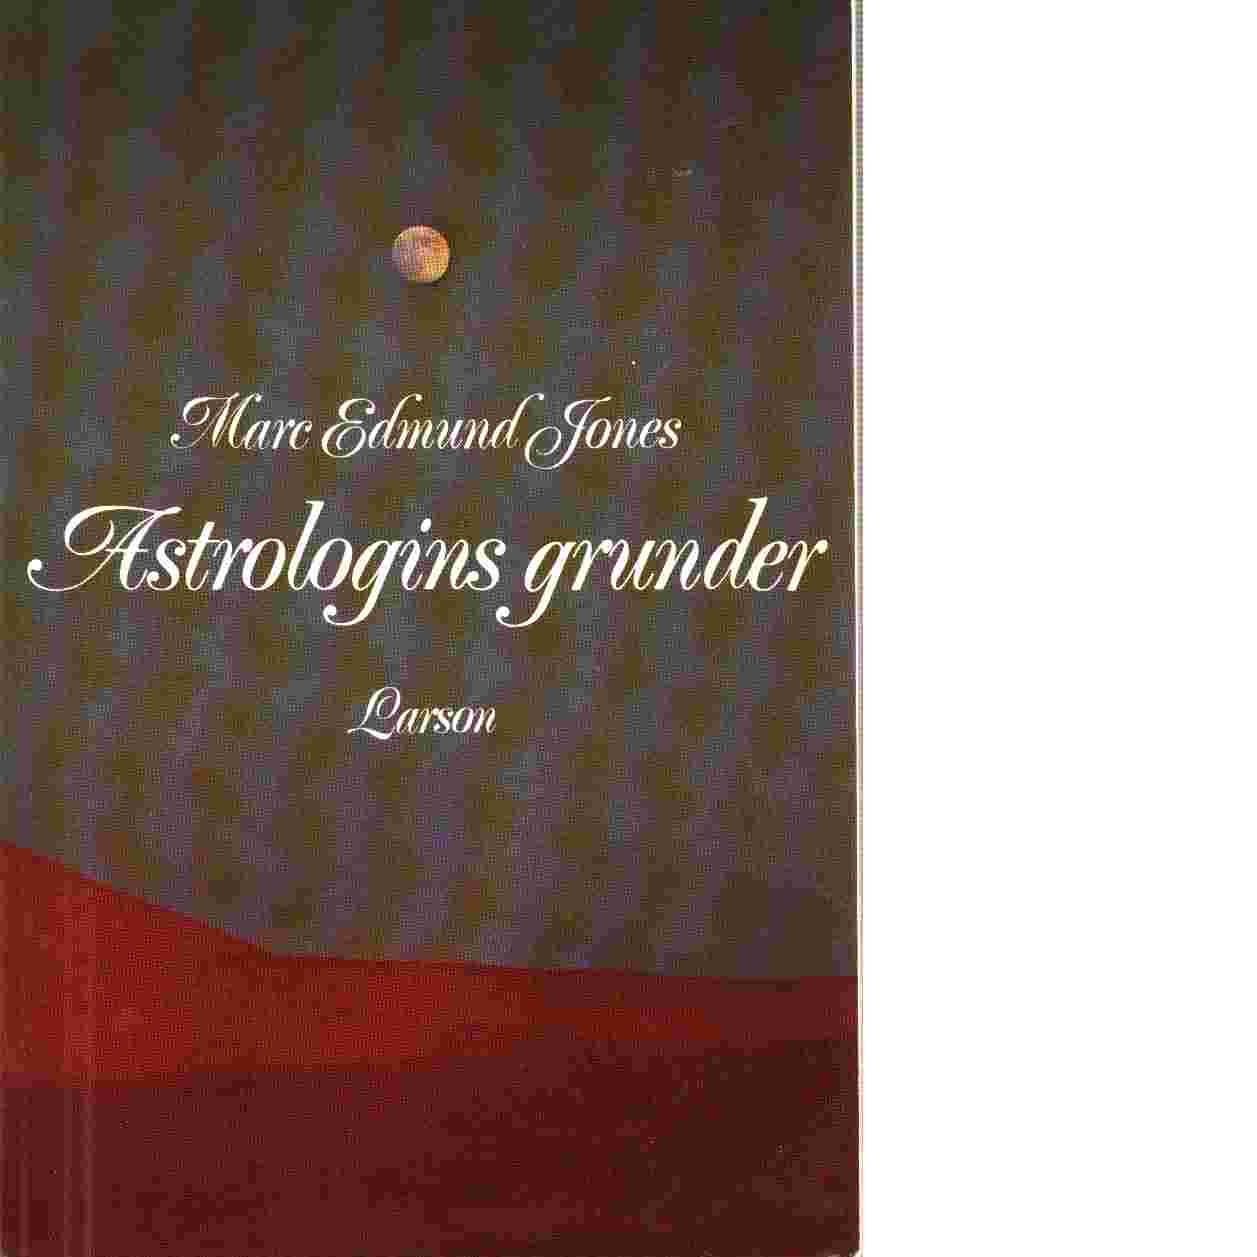 Astrologins grunder - Jones, Marc Edmund